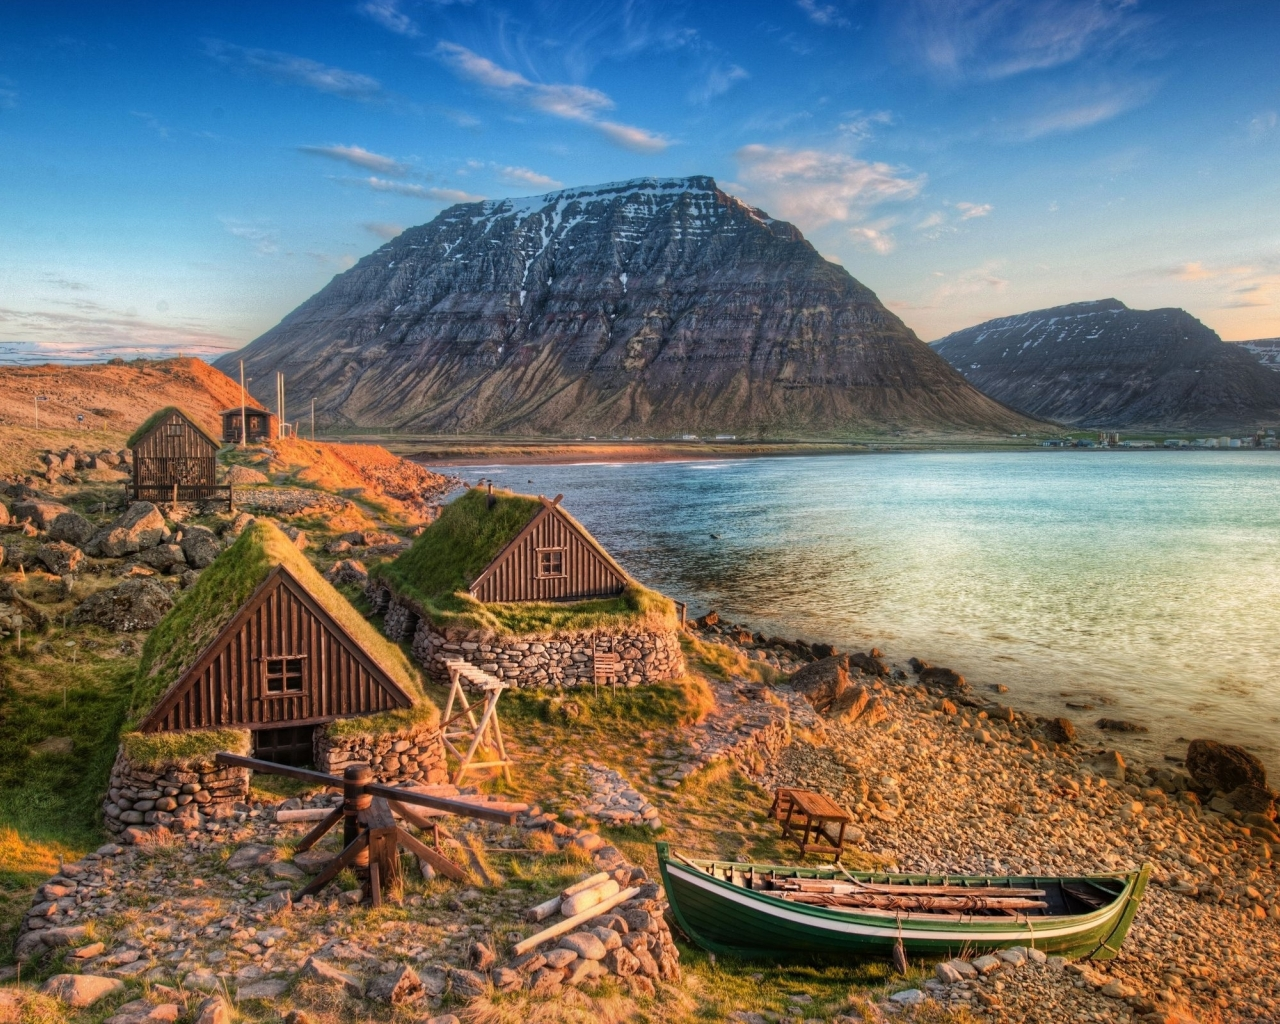 33010 download wallpaper Landscape, Houses, Mountains, Sea screensavers and pictures for free